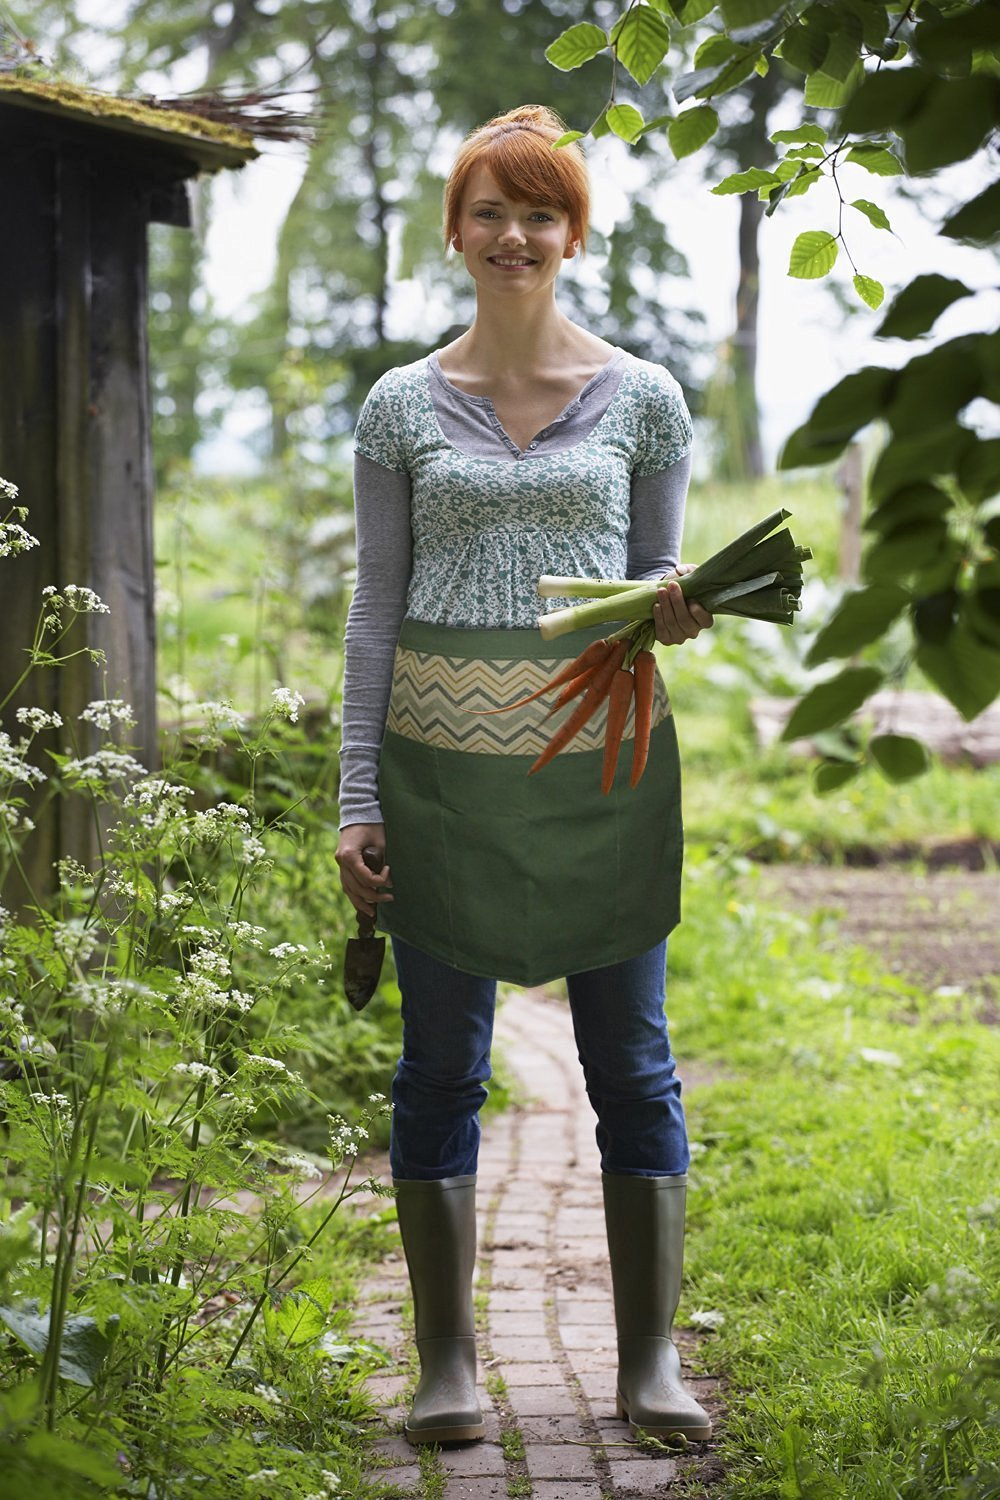 New Handmade Garden Apron with Pockets Now Available with Bonus